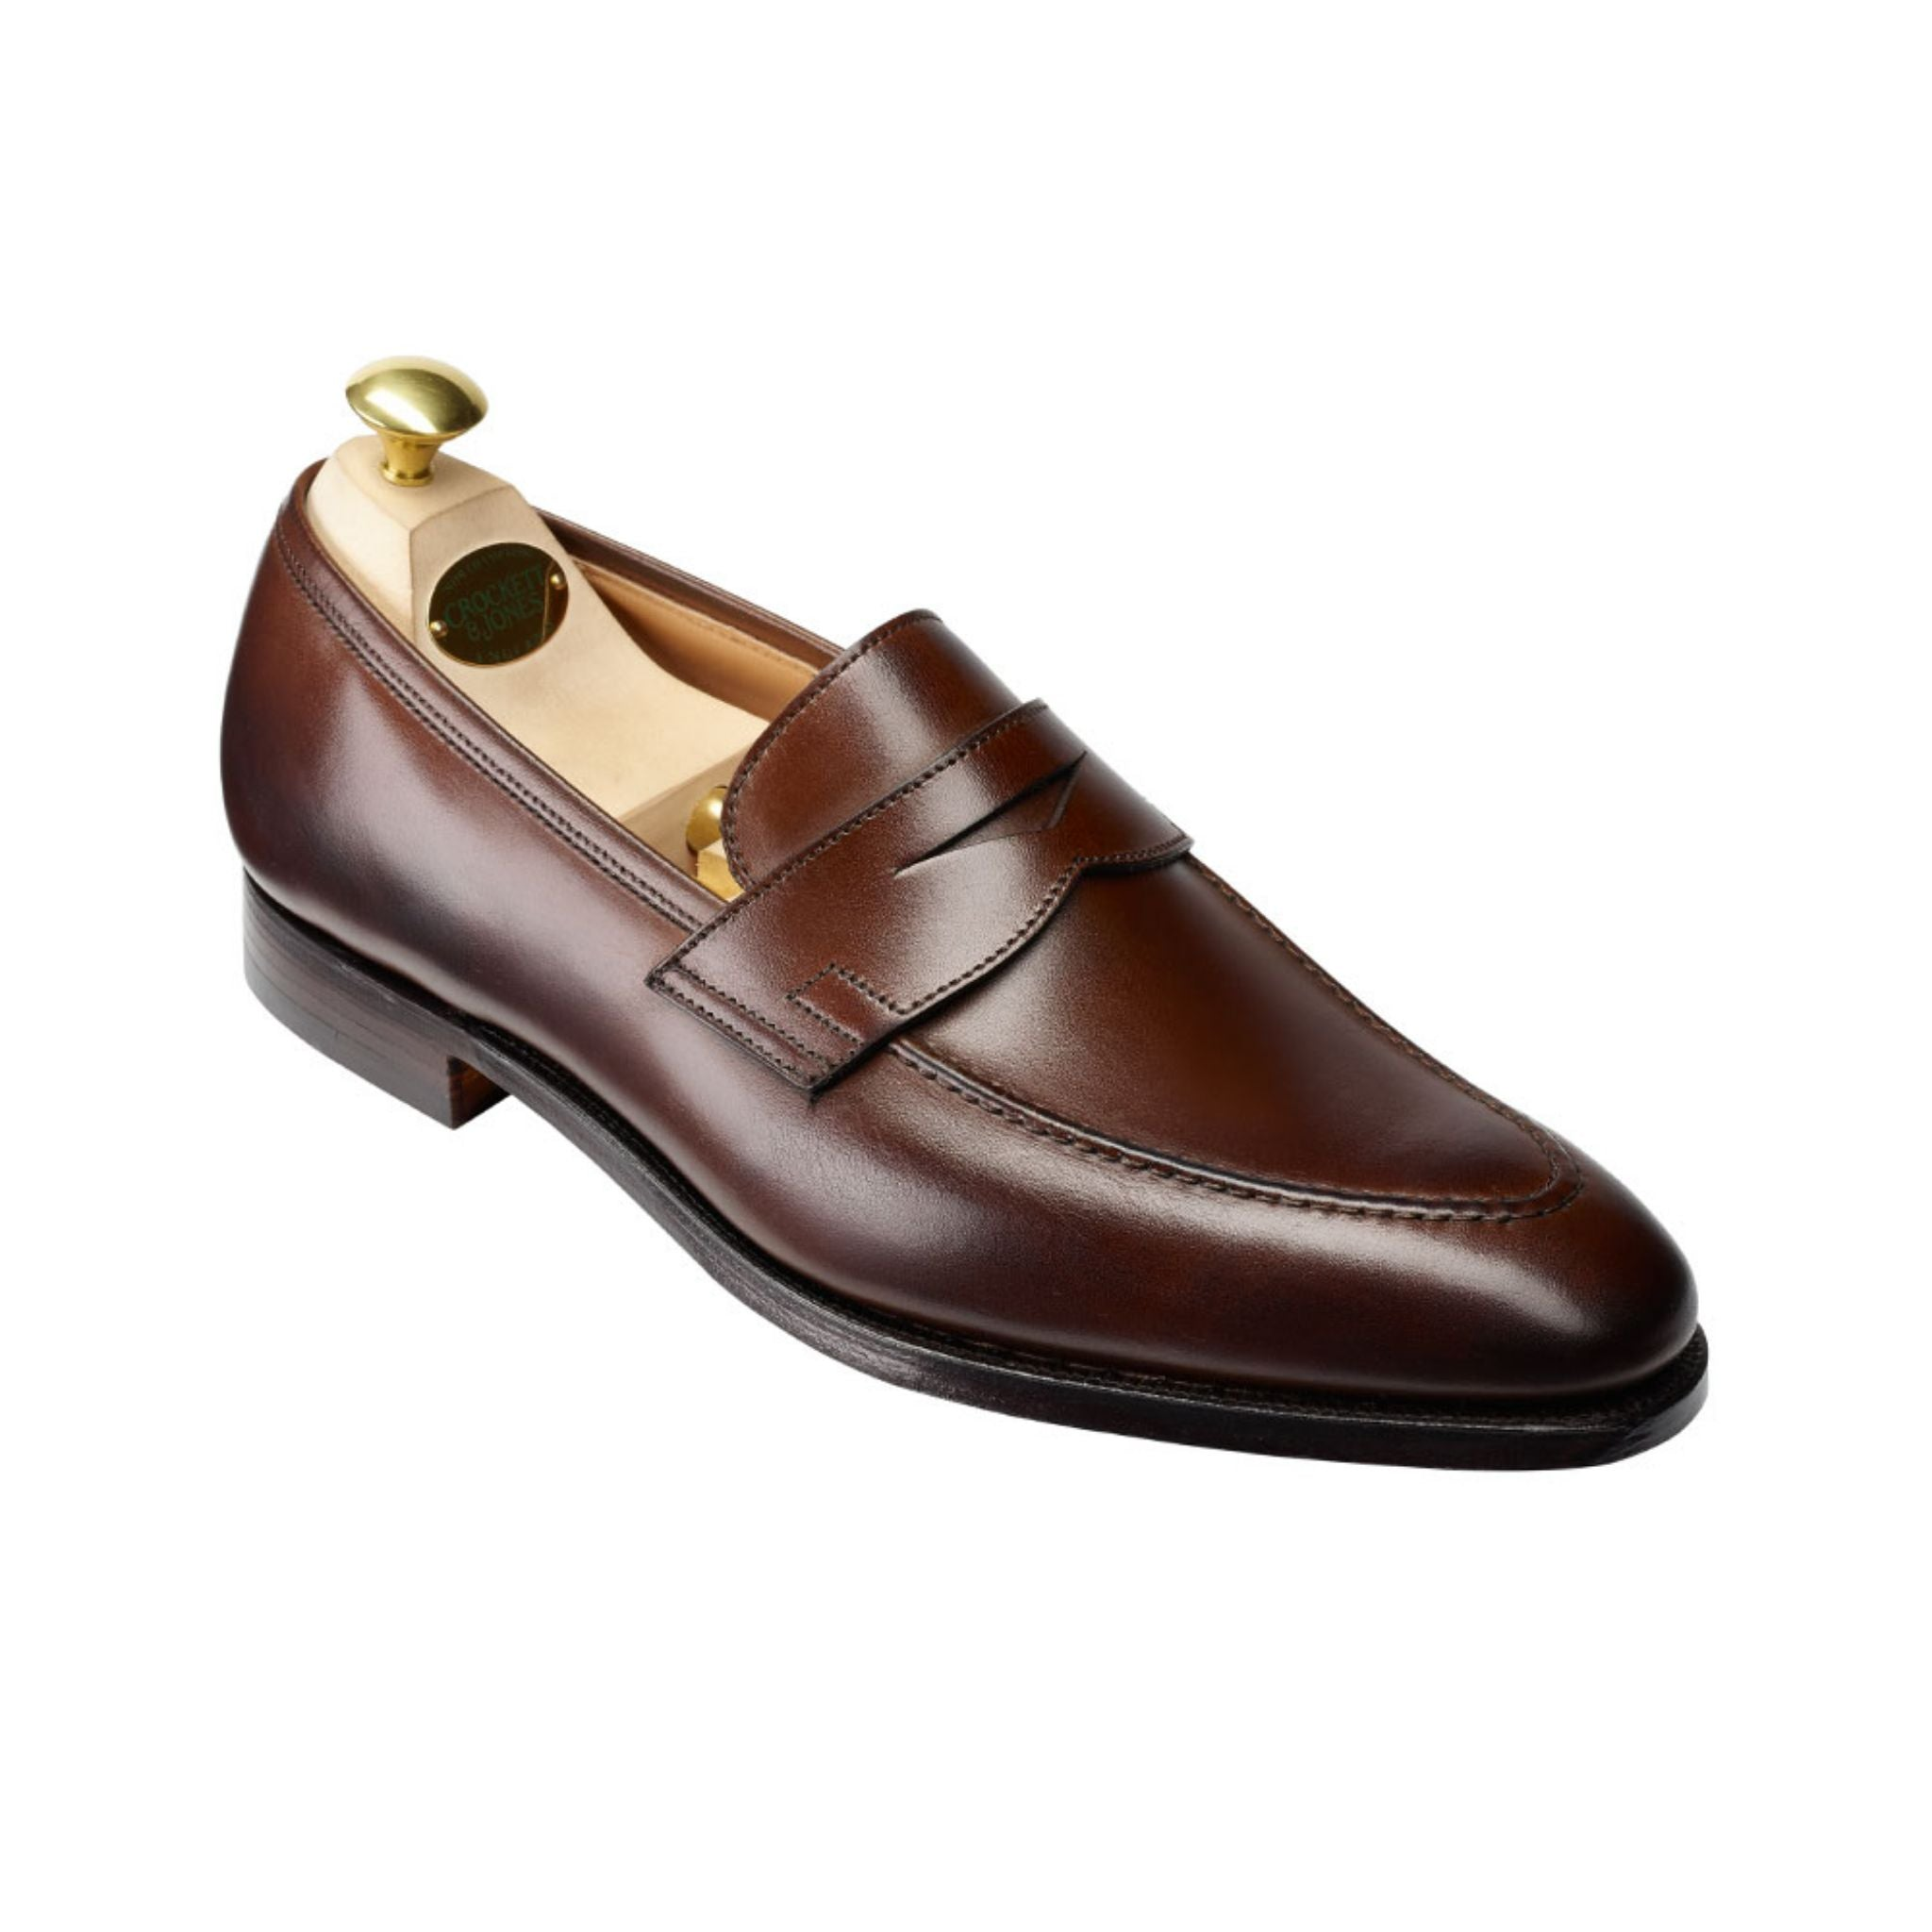 5x Penny loafers - Crockett&Jones Sydney